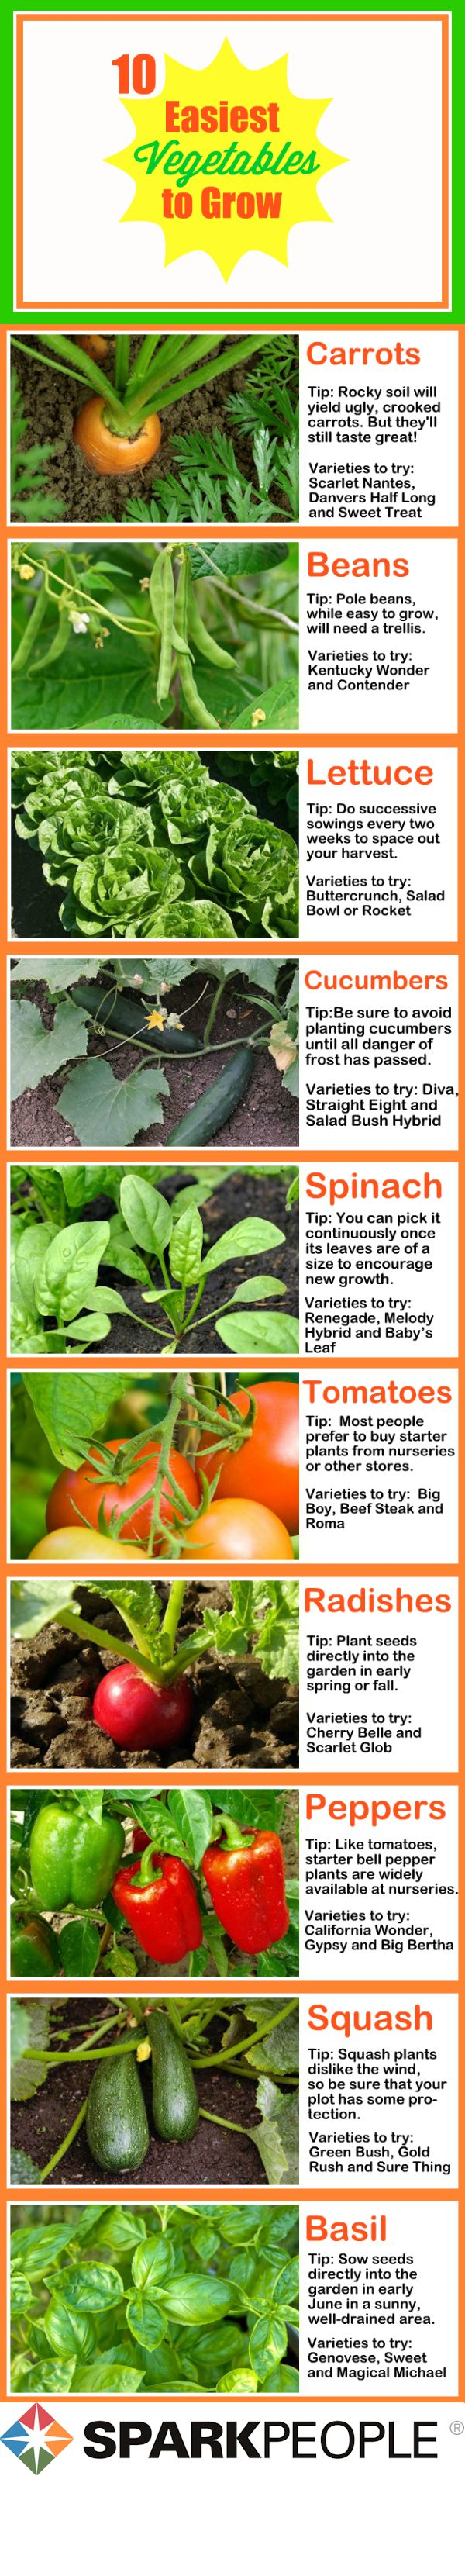 The 10 easiest vegetables to grow sparkpeople for Easiest vegetables to grow